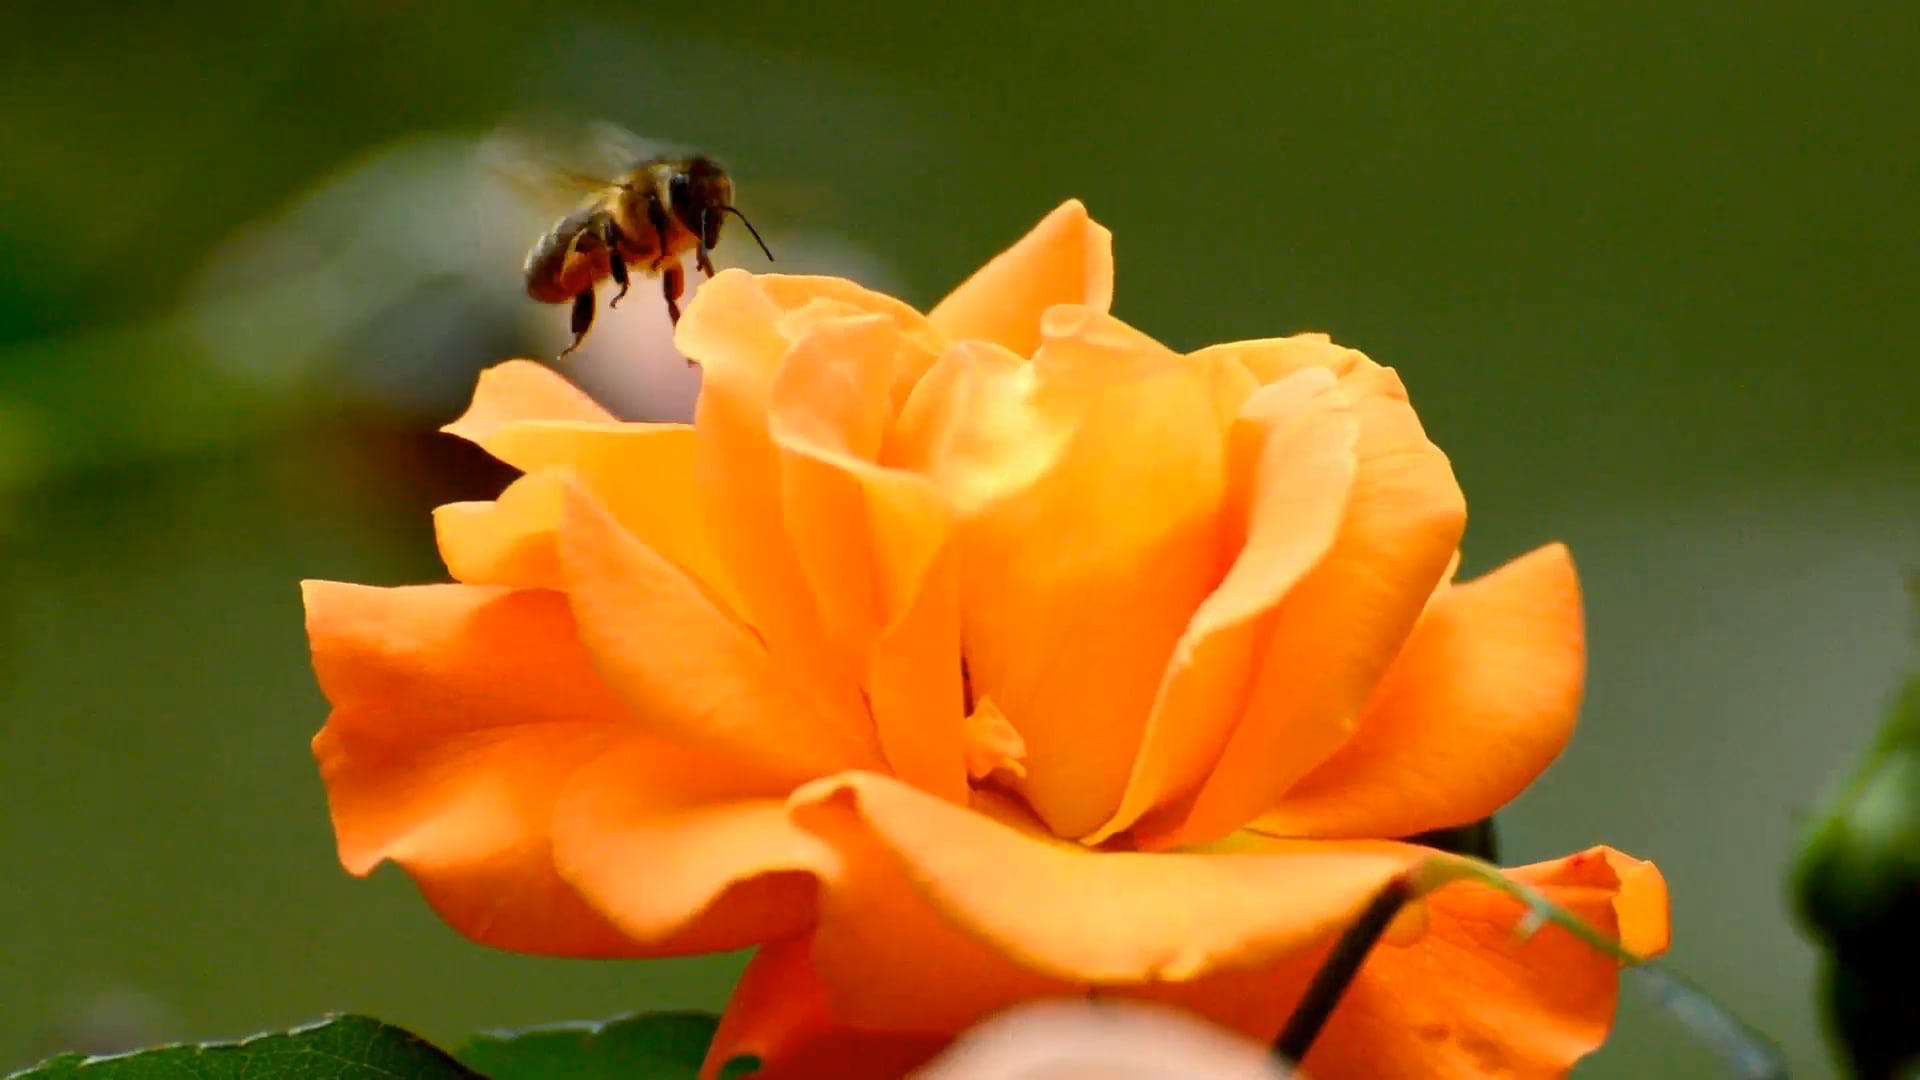 Bees Pollinating